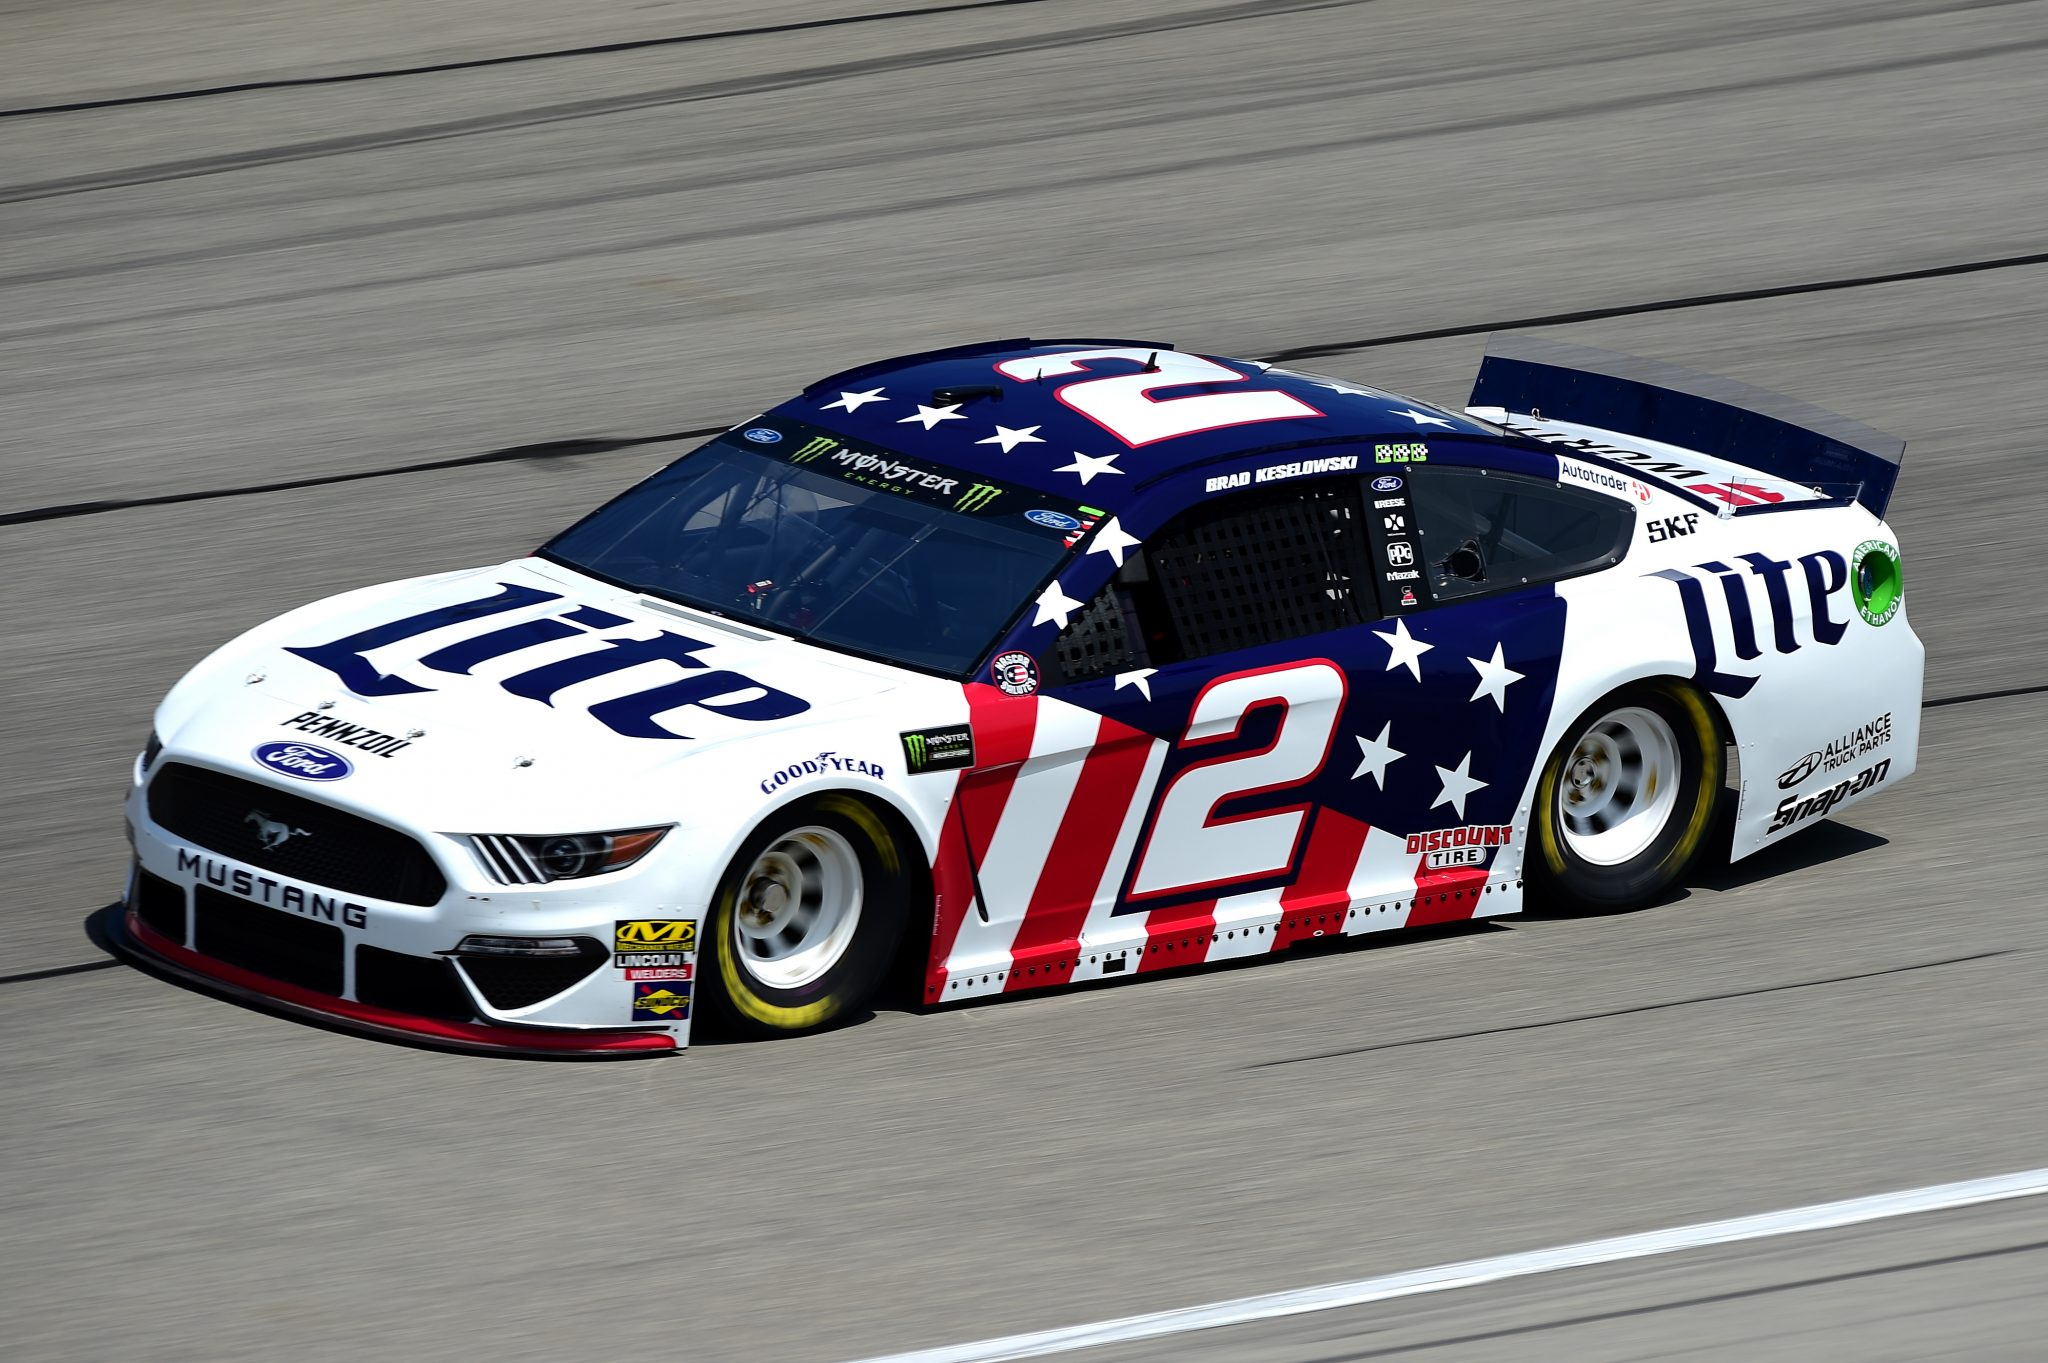 Kyle Busch And Brad Keselowski Head The List of Favorites To Win At Pocono